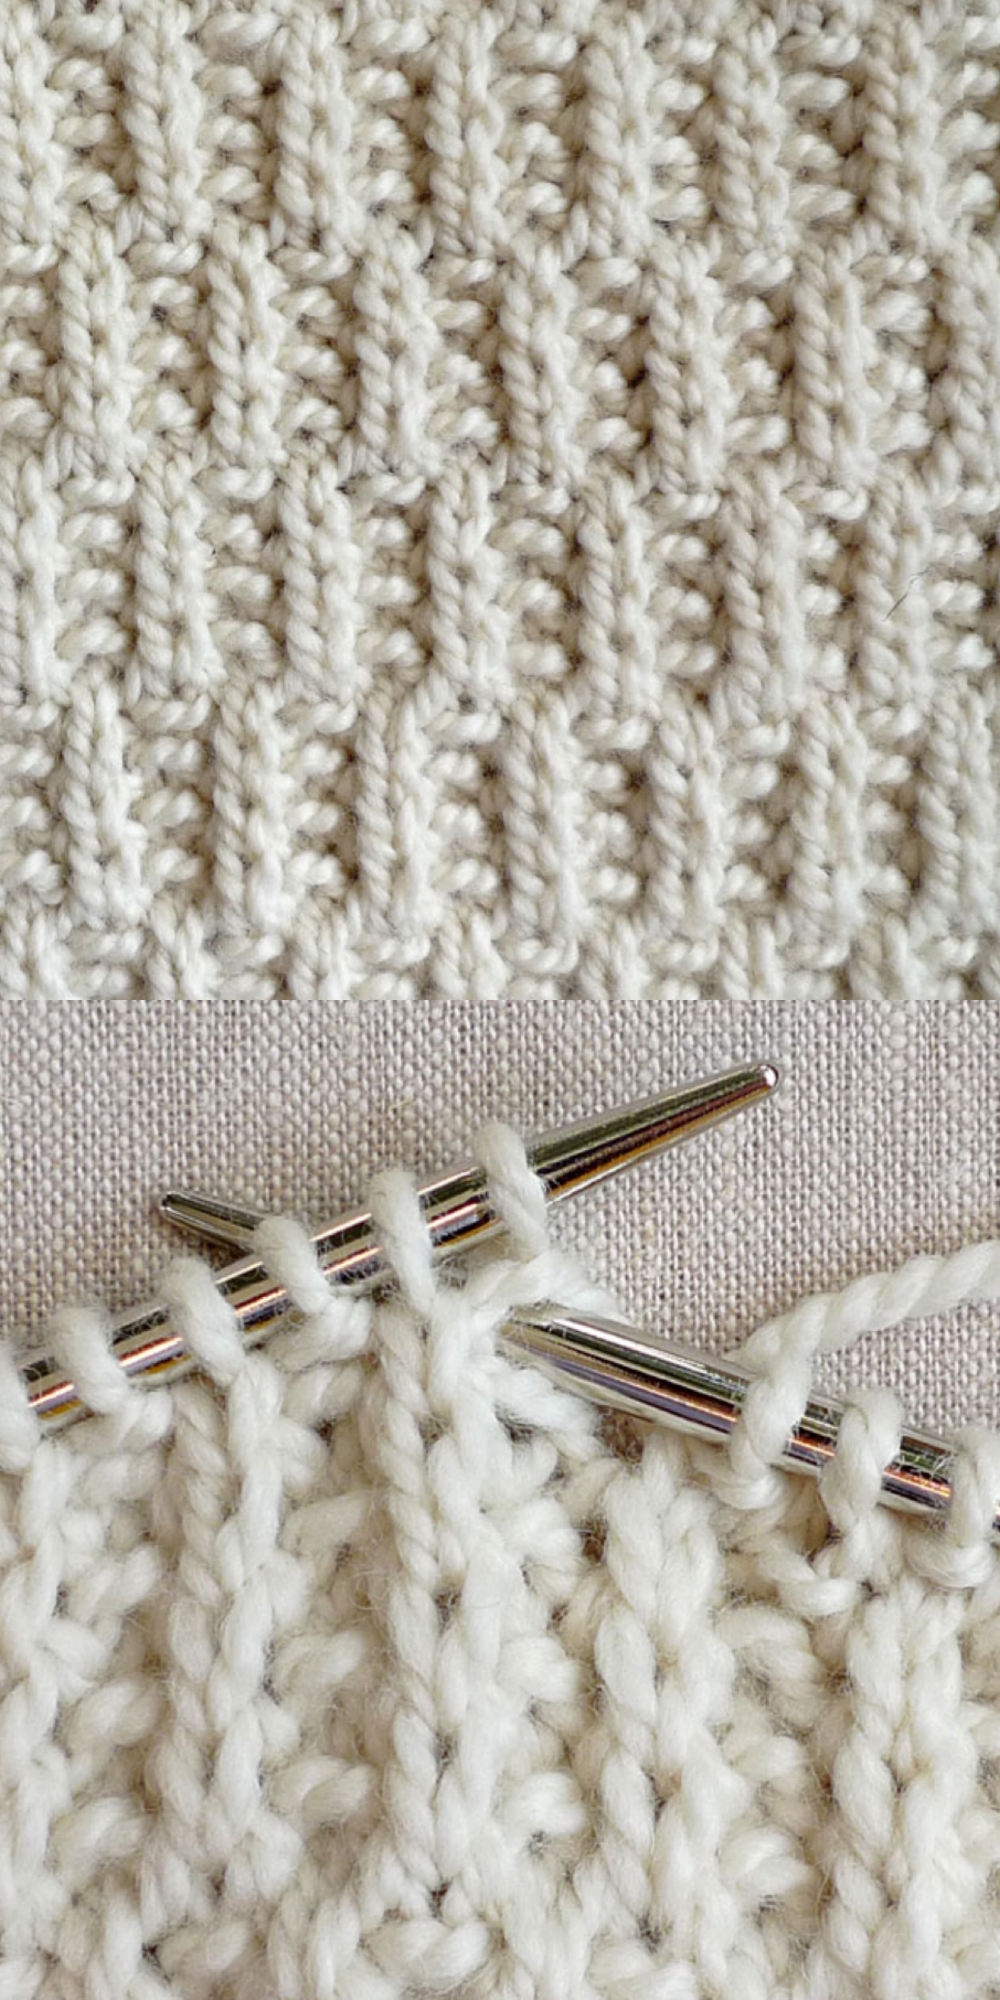 Knitting Quilt Stitch : Knitting tutorial quot rambler stitch has such great